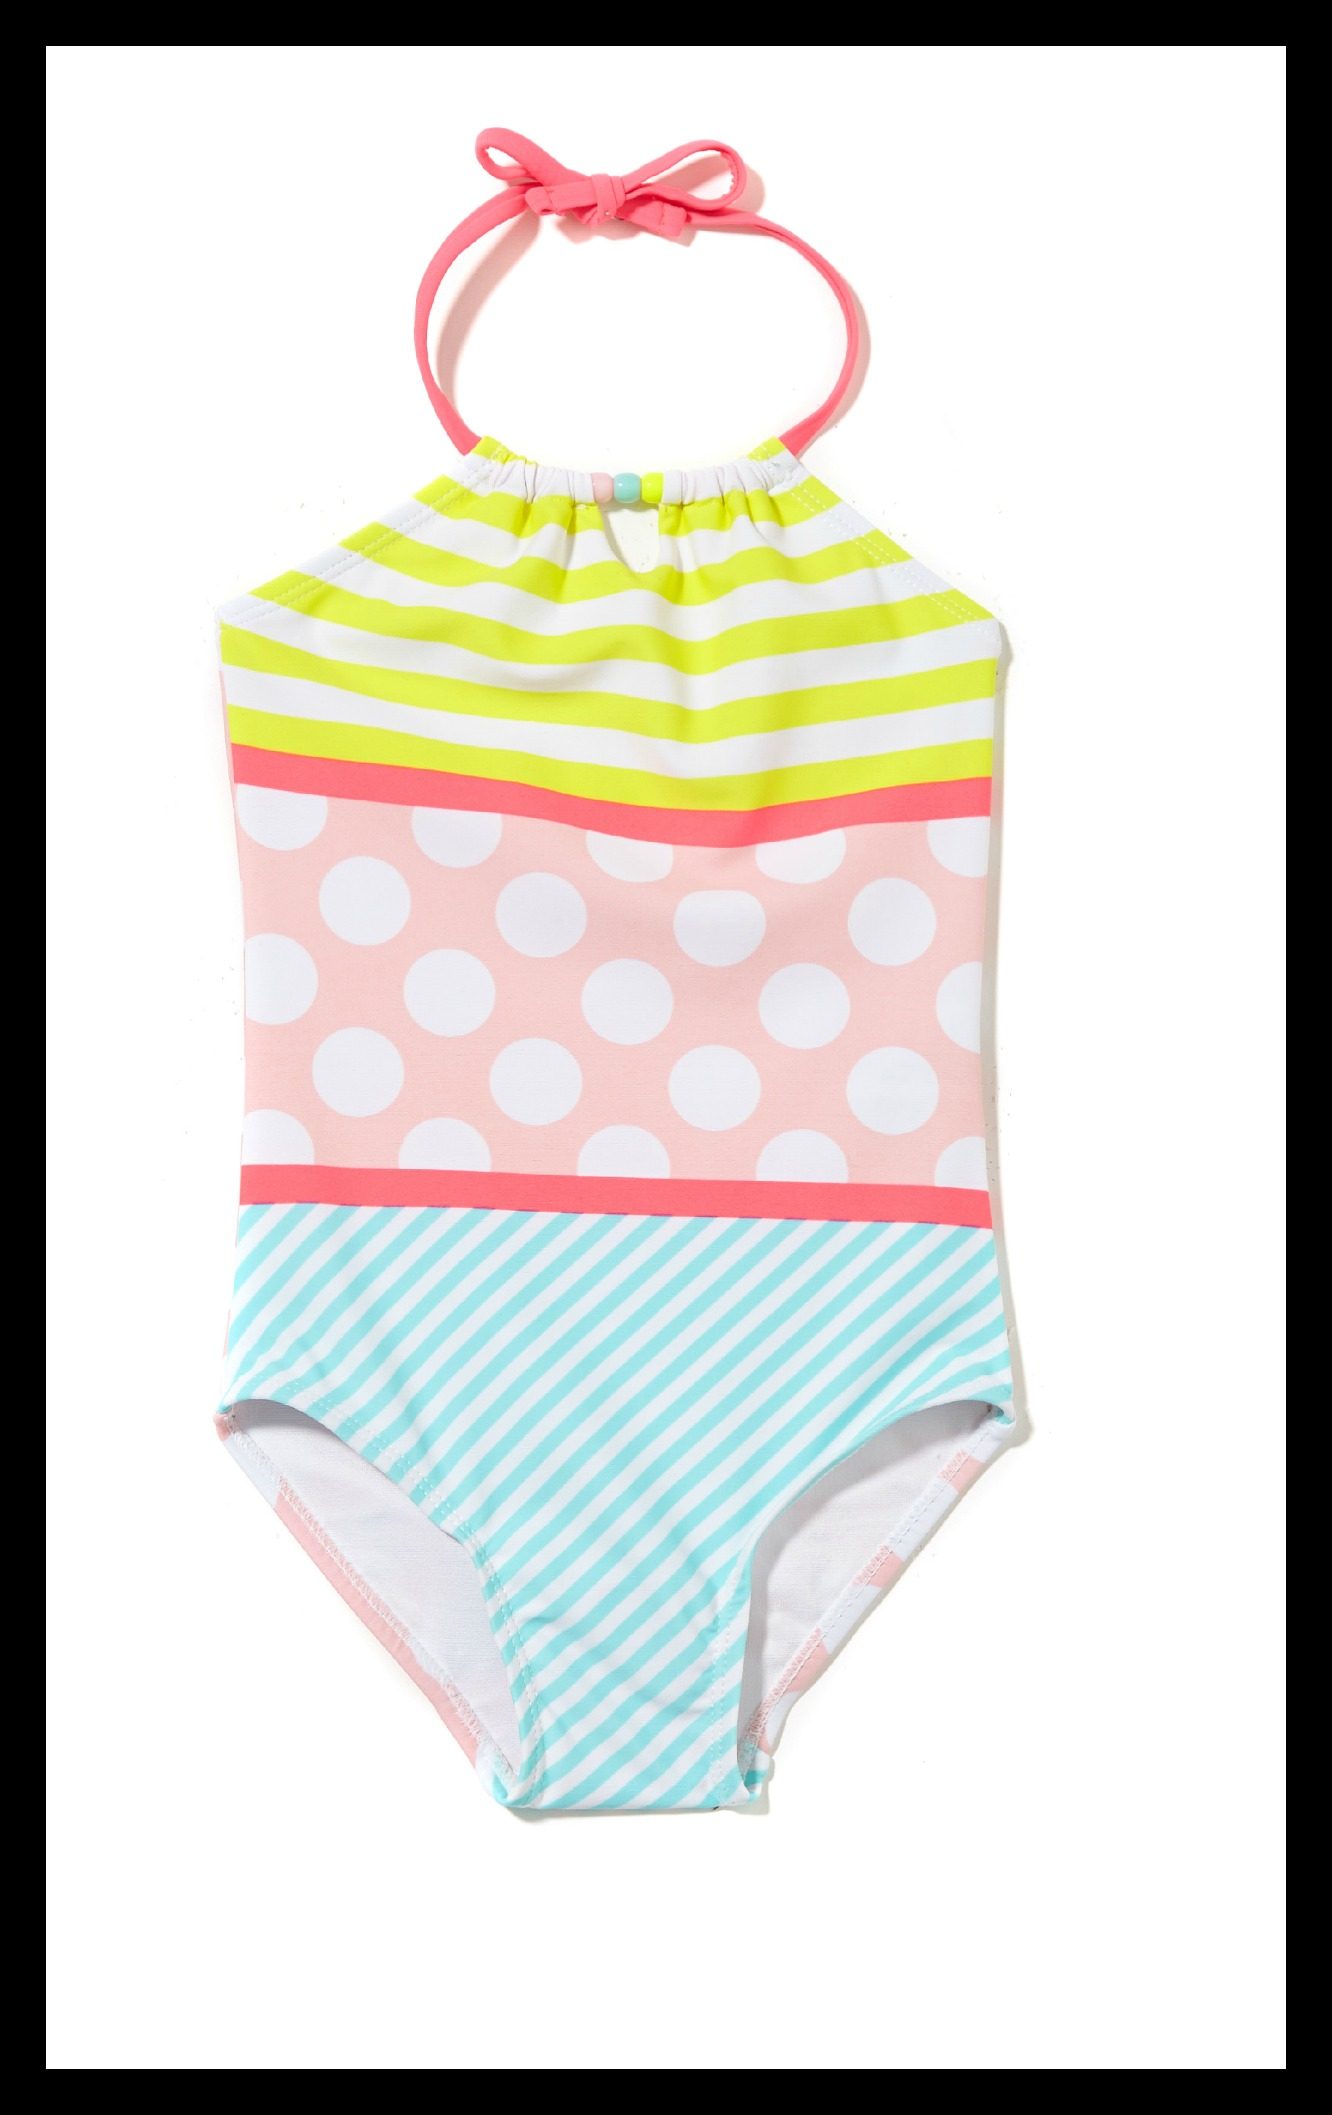 KIDS emma halter one piece R269.00